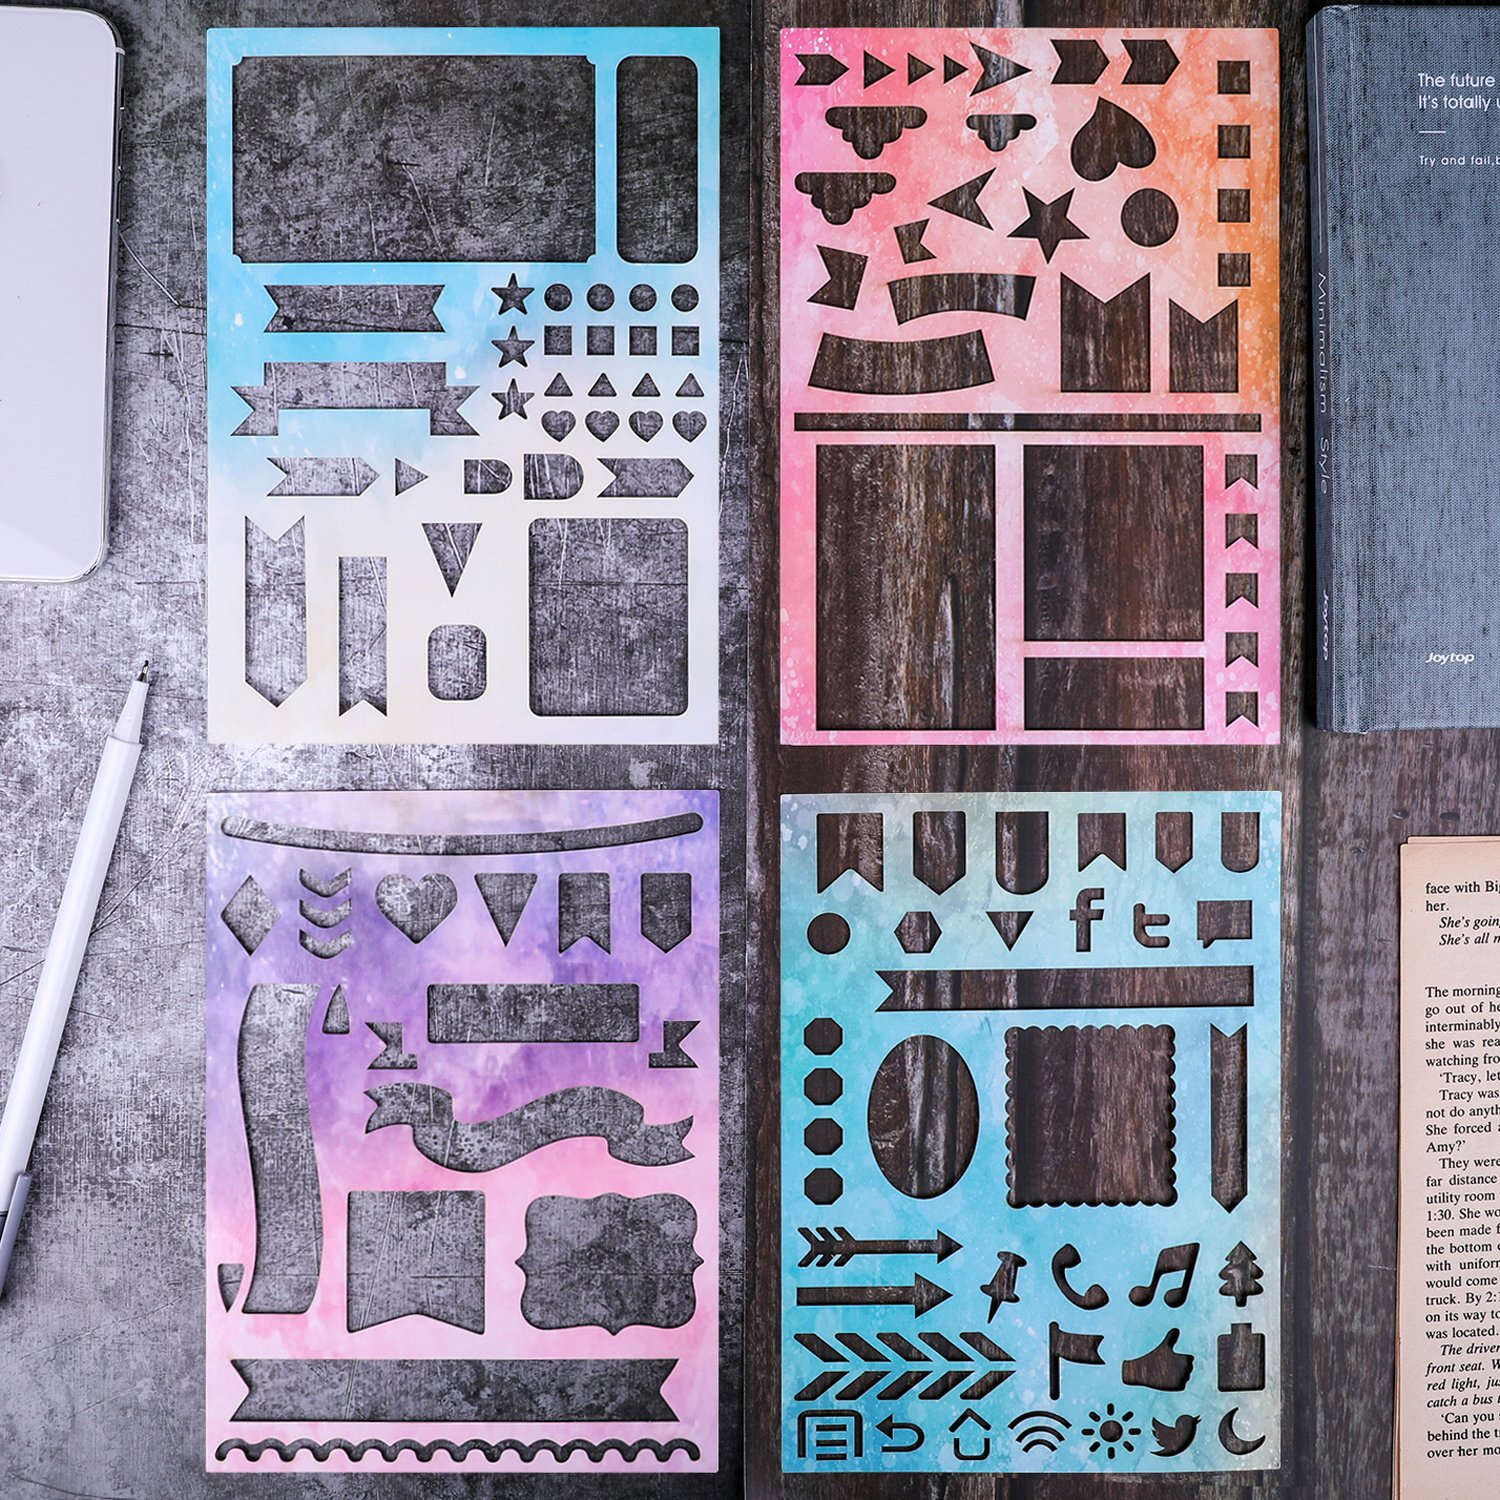 BULLET JOURNAL STENCIL SET 4 PACK - Banners, Dividers, Icons Fits Leuchtturm & Moleskine A5 Notebooks, Best Used with Huhuhero Fineliners & Sakura Micron Pens, 5 X 7 inches MUUYIYA 757490647382